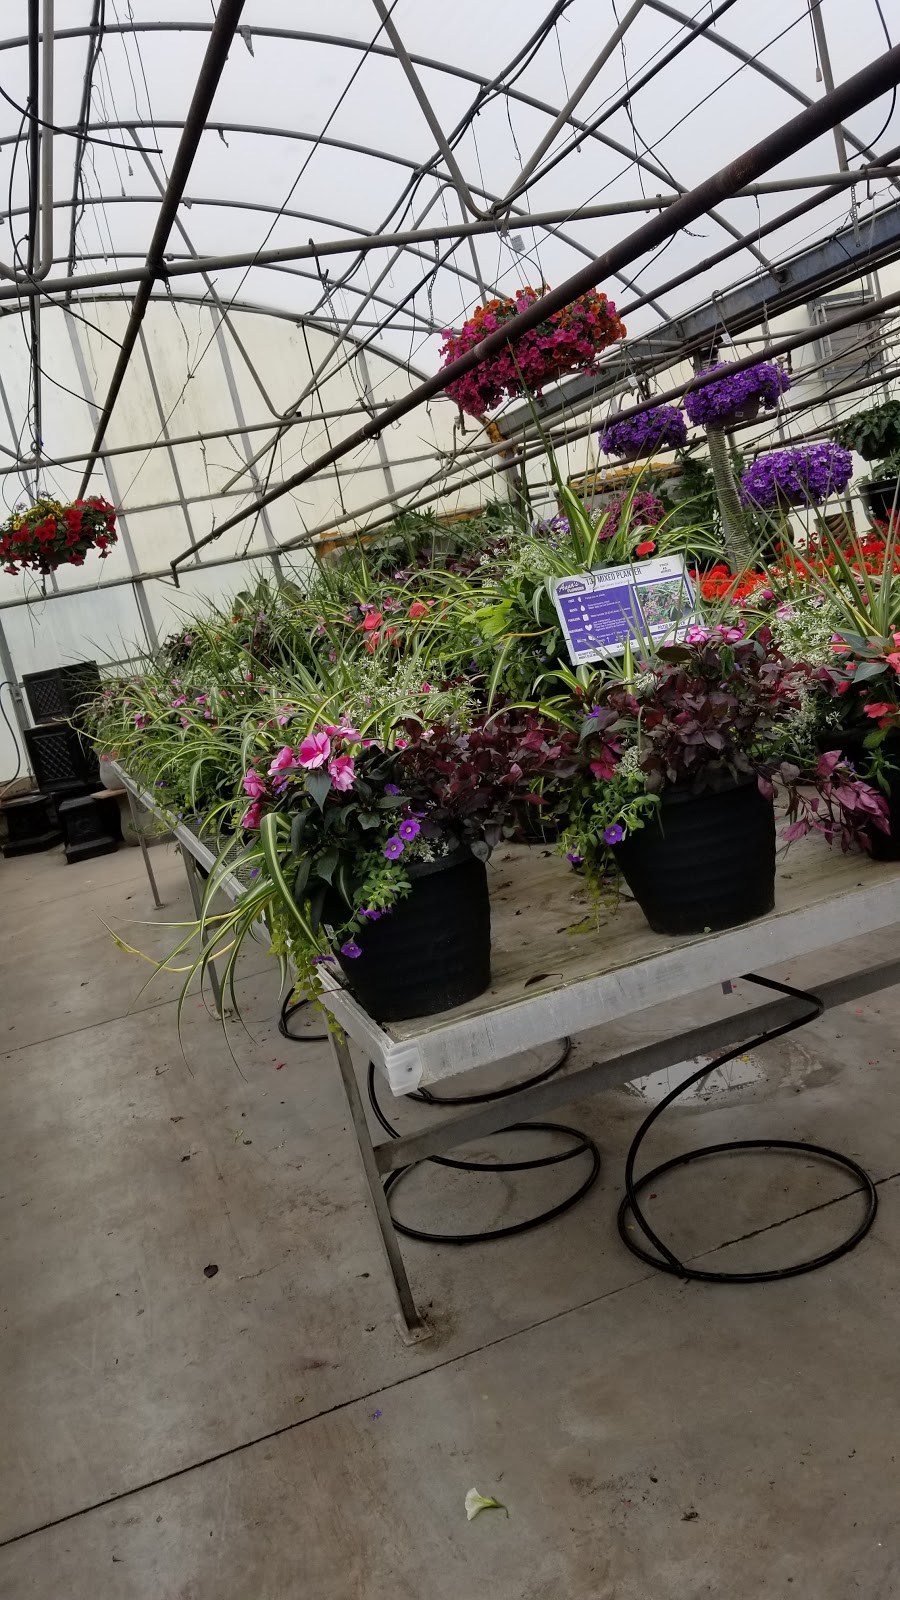 Annas Garden Home & Wellness | florist | 1911 Seacliff Dr, Kingsville, ON N9Y 2N3, Canada | 5193263409 OR +1 519-326-3409